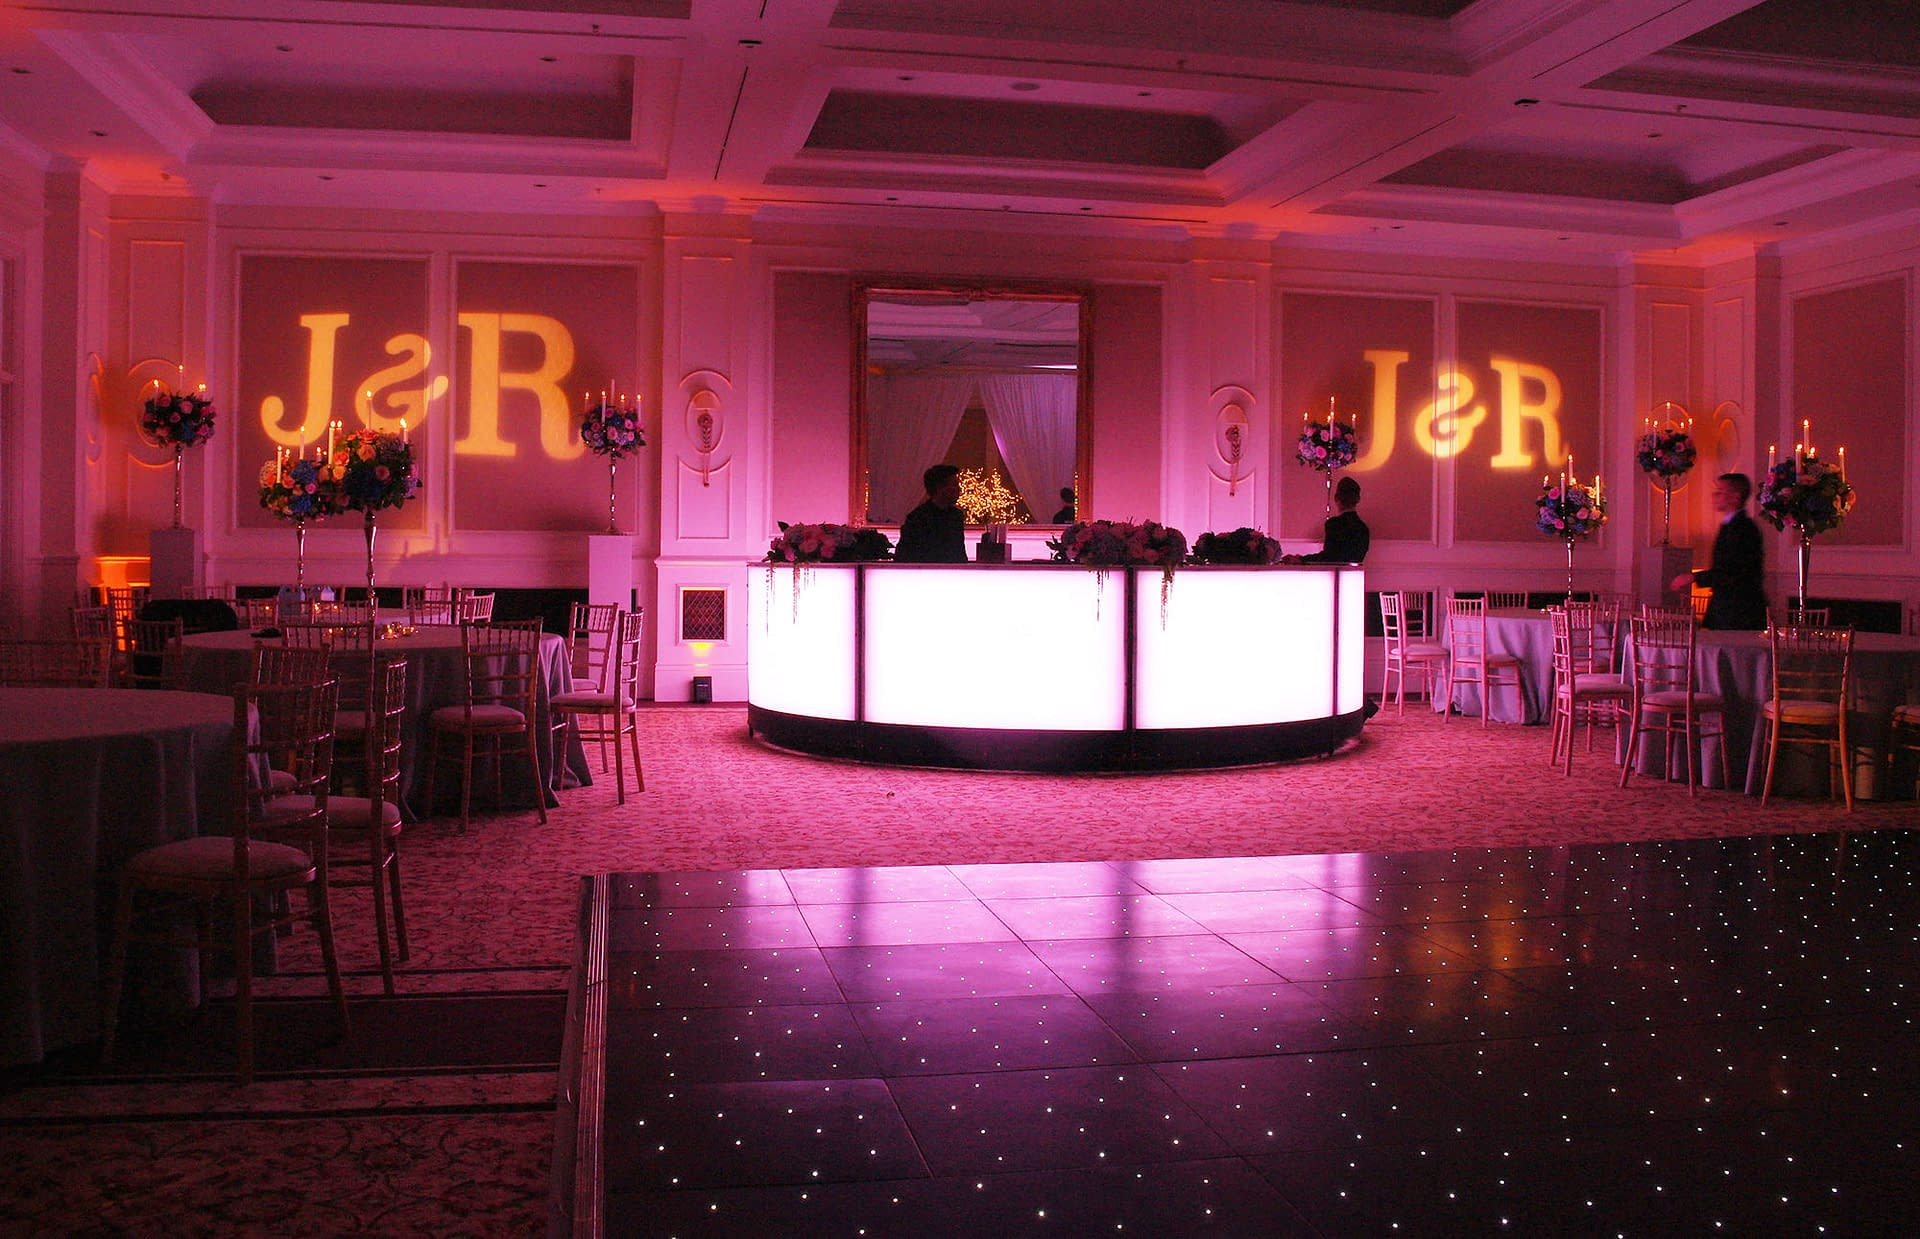 Mood lighting, illuminated dance floor and wall projections at The Four Seasons Hook, UK wedding venue